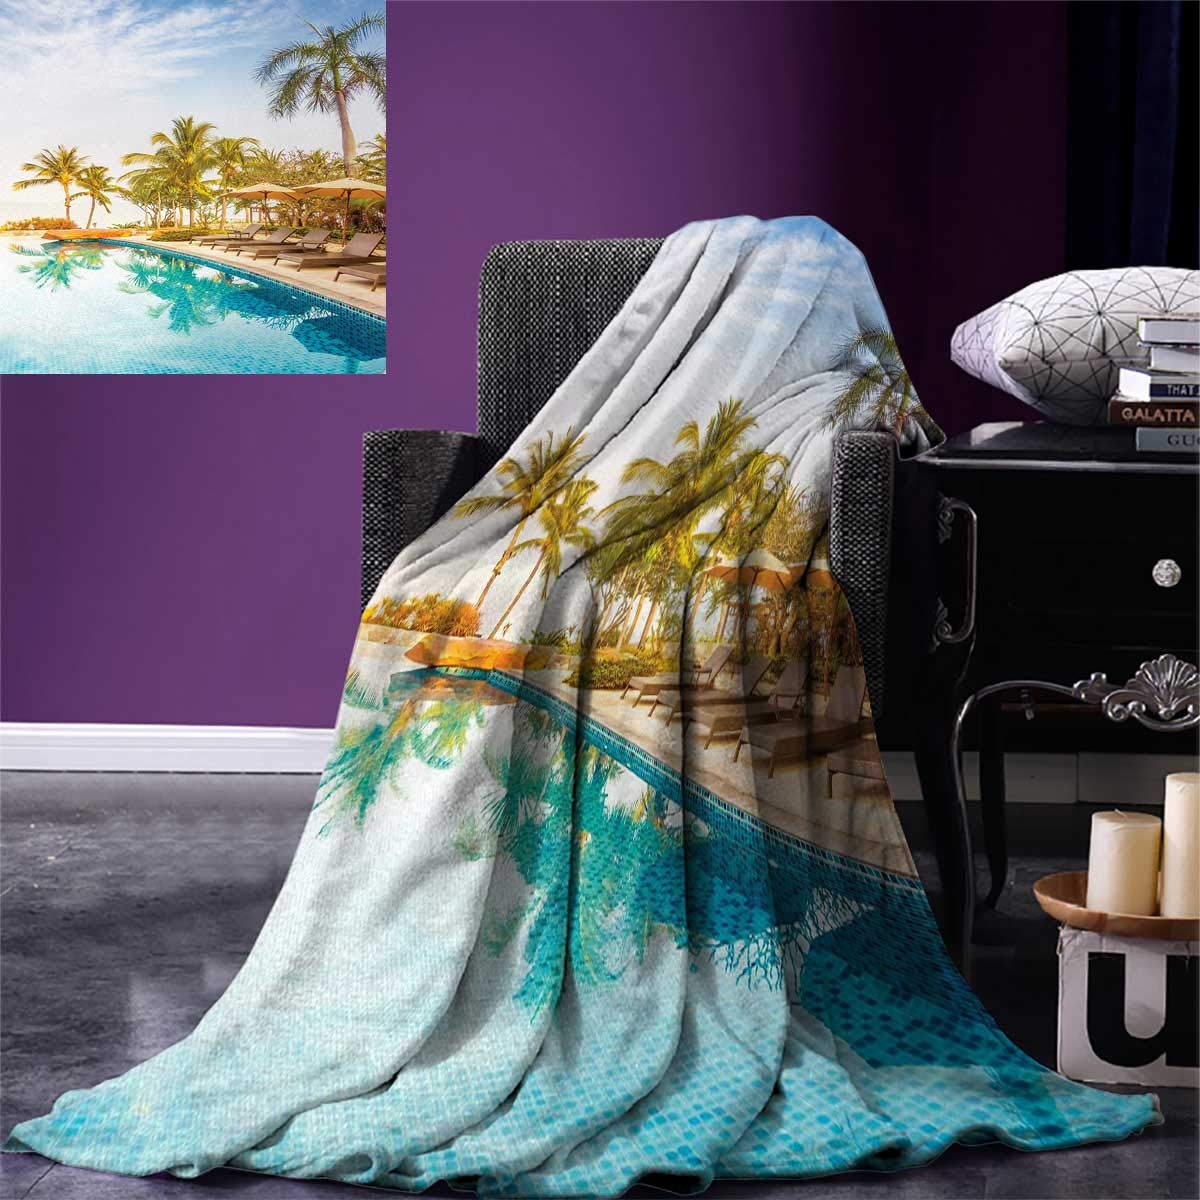 smallbeefly Landscape Digital Printing Blanket Aerial View A Pool in A Health Resort Spa Hotel Exotic Sports Modern Photo Summer Quilt Comforter 80''x60'' Multi